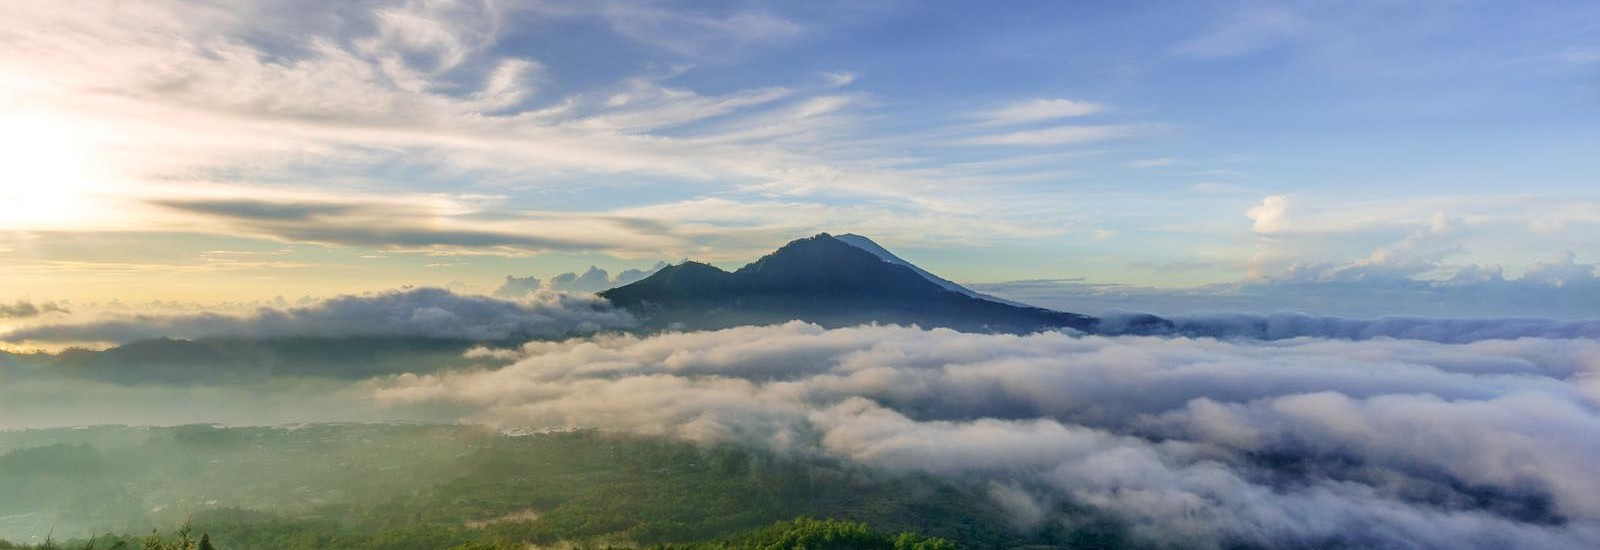 Being able to catch sunrise at 1,717m above sea level on top of Mt Batur was really nice. You get to see the caldera, the monkeys that are living there, as well as being able to cook breakfast (eggs) in the crater (it's an active volcano) was really worth the 2-hour hike that starts at 4am (pickup from the homestay at 2am!). The mountains in the foreground are Mt Abang and Mt Agung, which is the highest point in the island of Bali at 3,031m.